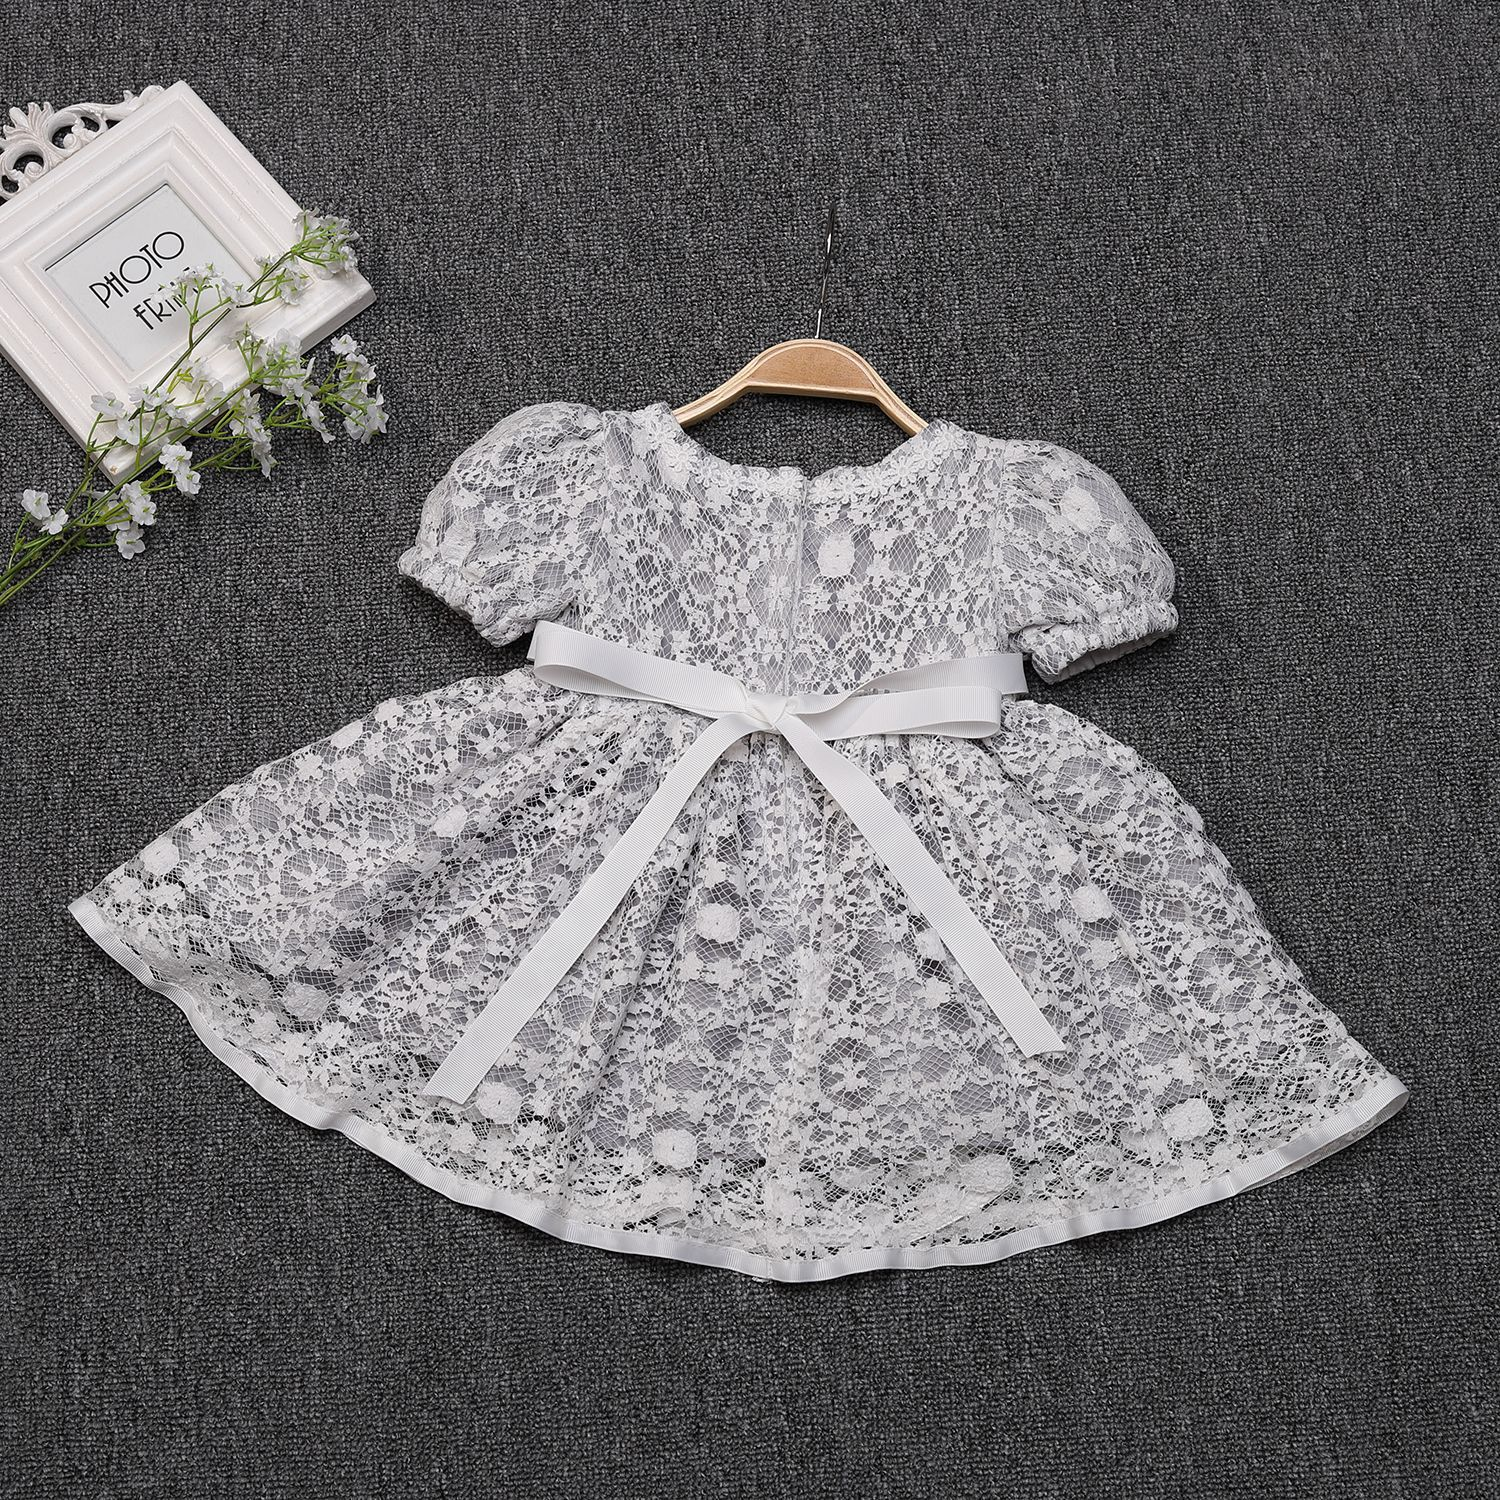 Elegant Soft Princess Toddler Clothes Sliver Gray Baby Formal Party Evening Dress For Girls Clothing